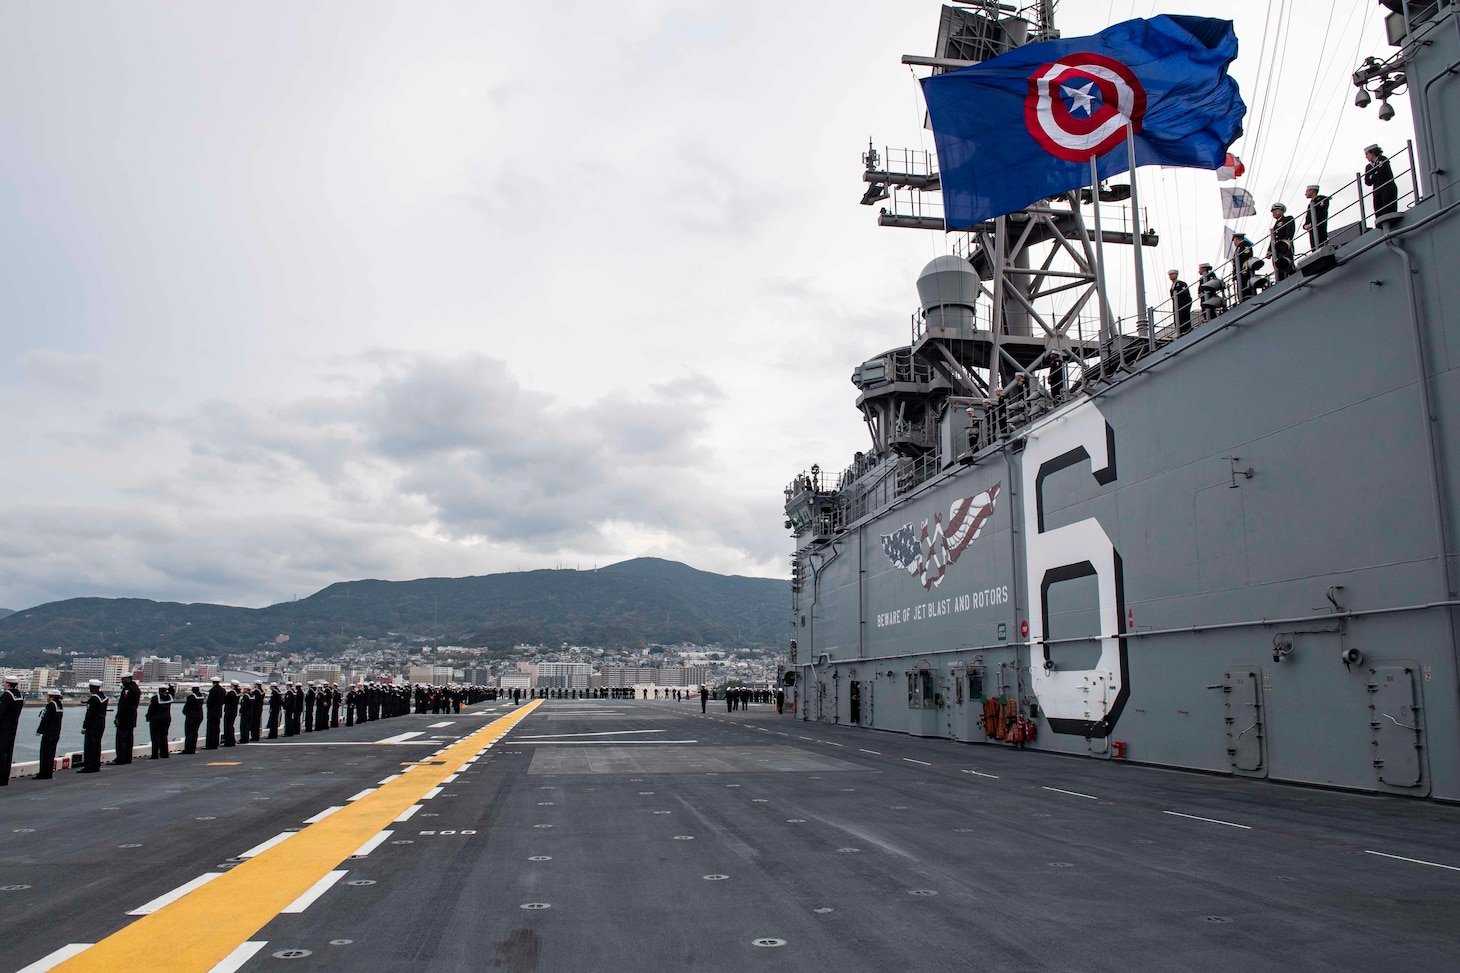 SASEBO, Japan (Dec. 6, 2019) Sailors man the rails as the amphibious assault ship USS America (LHA 6) arrives at Sasebo, Japan to join the forward-deployed naval forces. America is assigned to Amphibious Squadron Eleven and will serve as the flagship for Expeditionary Strike Group 7 while conducting routine operations in the Western Pacific.